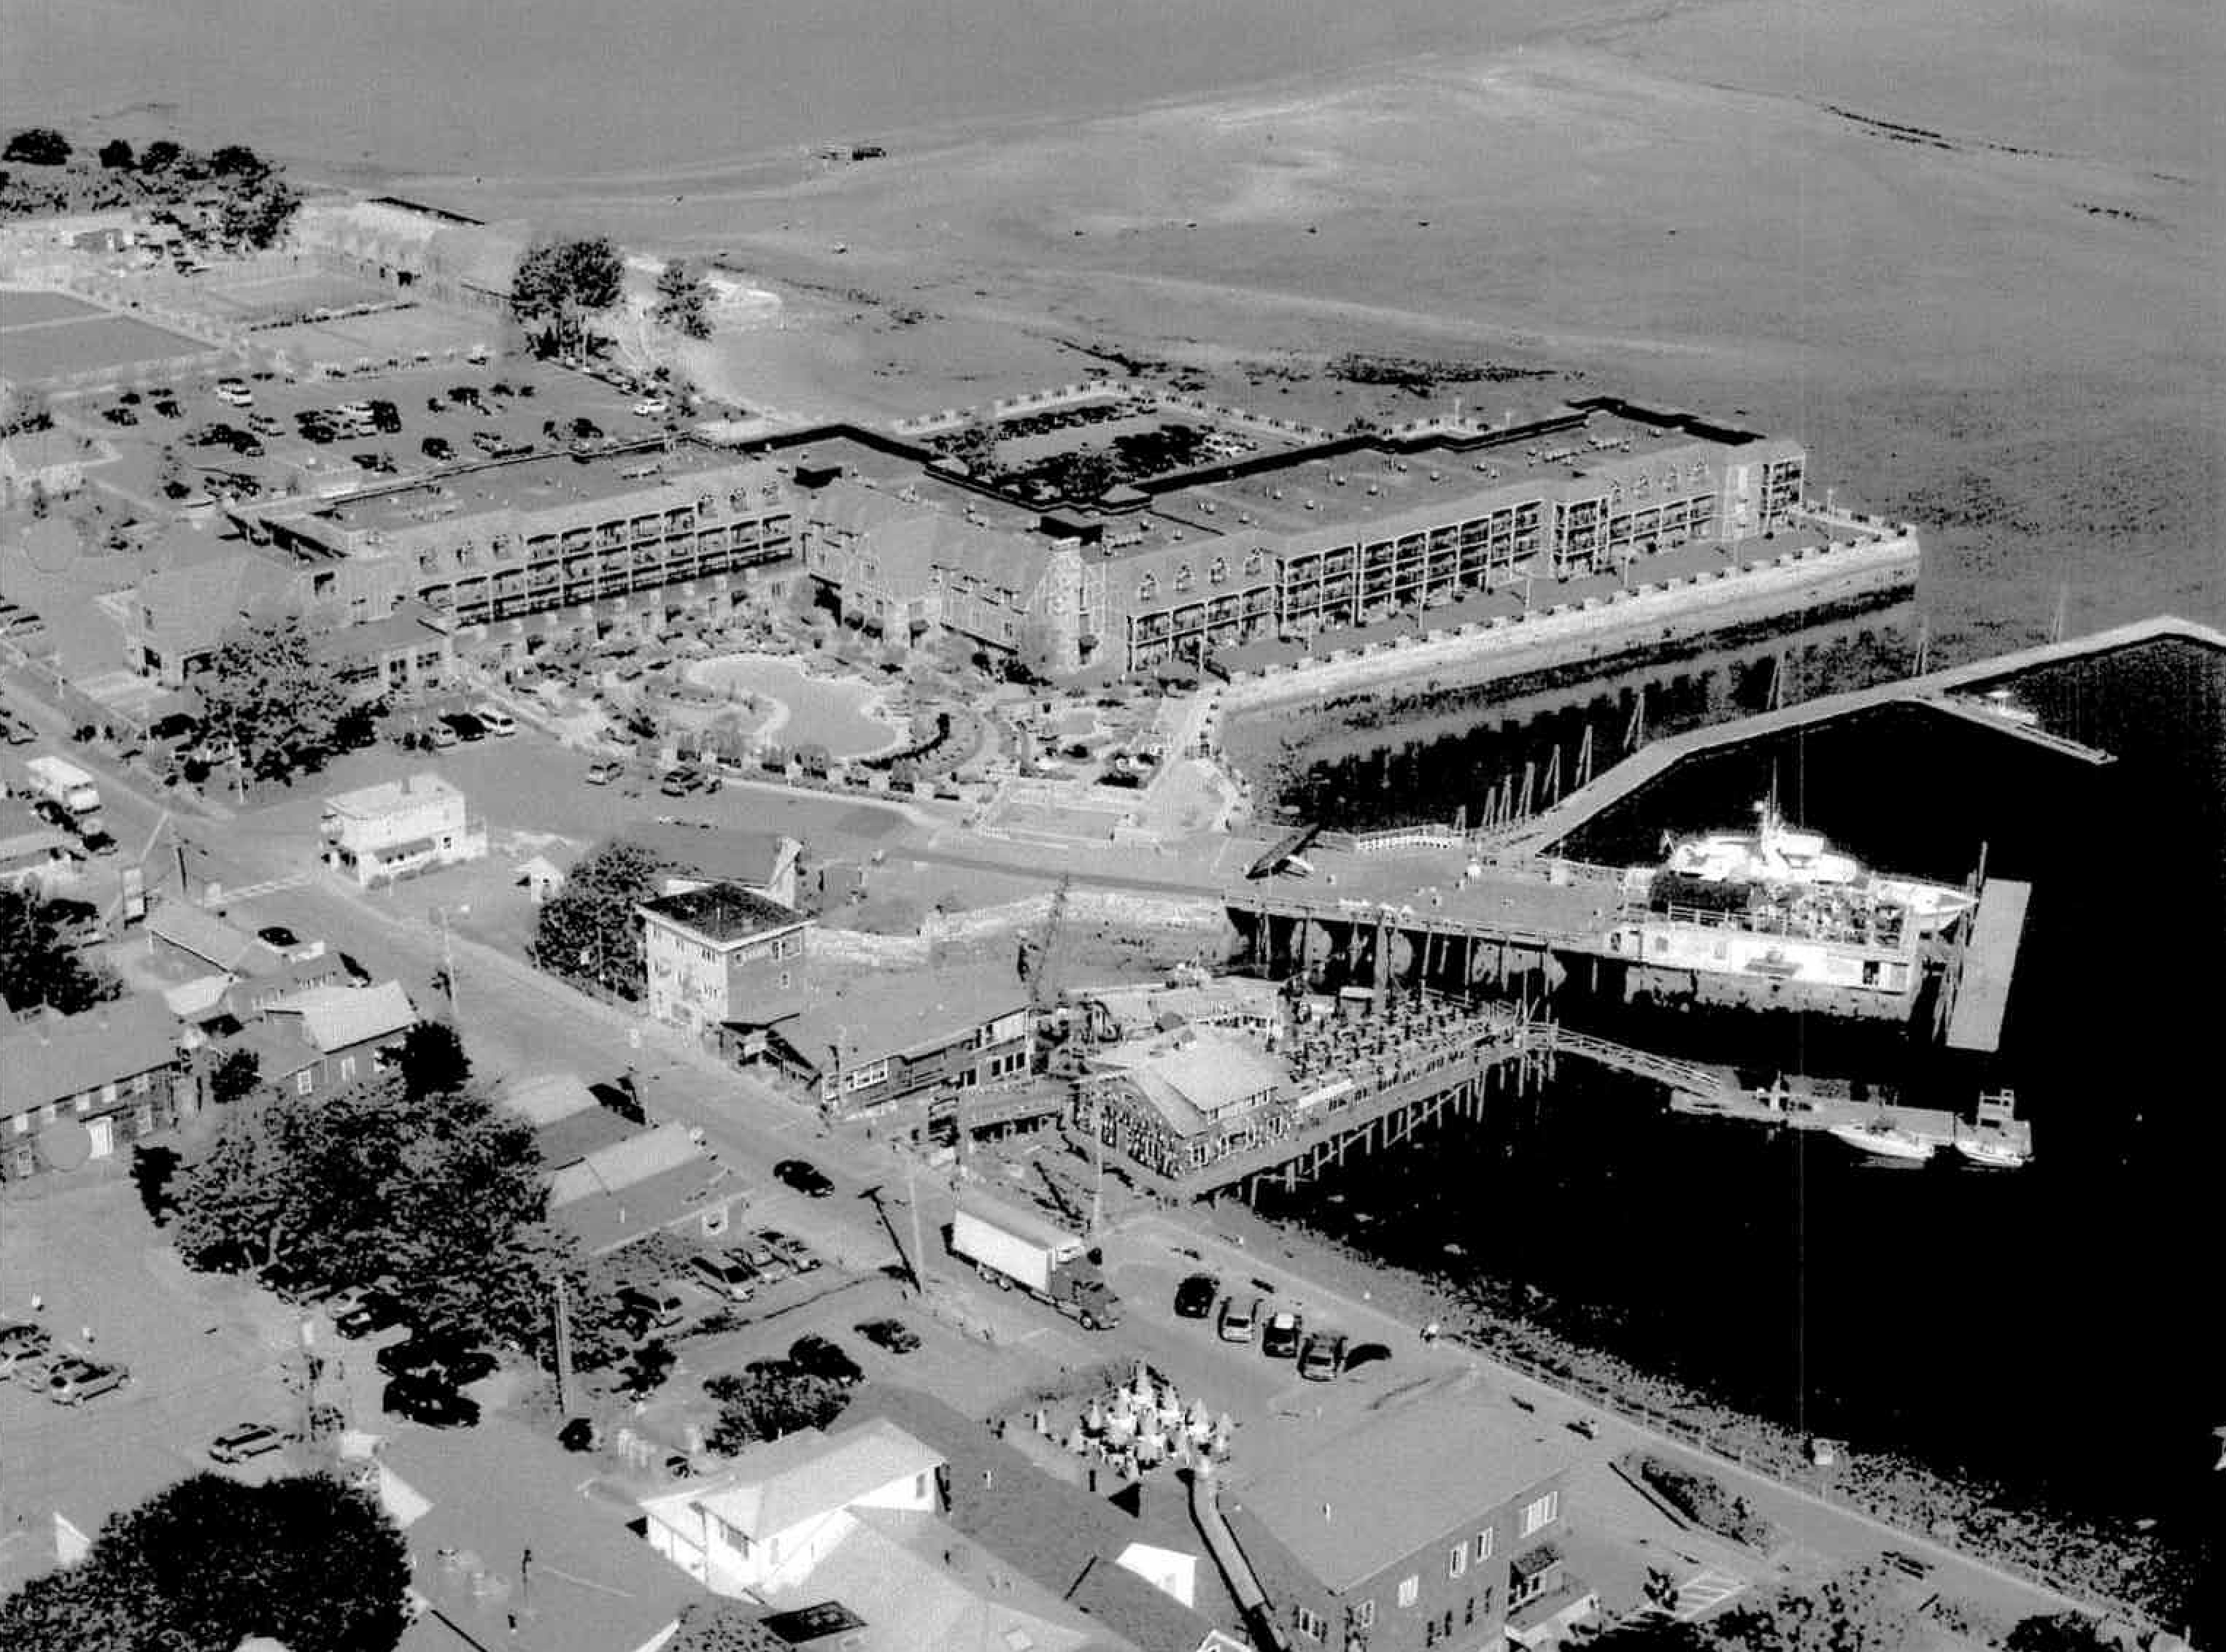 An image from a planning document shows different elements of the pier project.